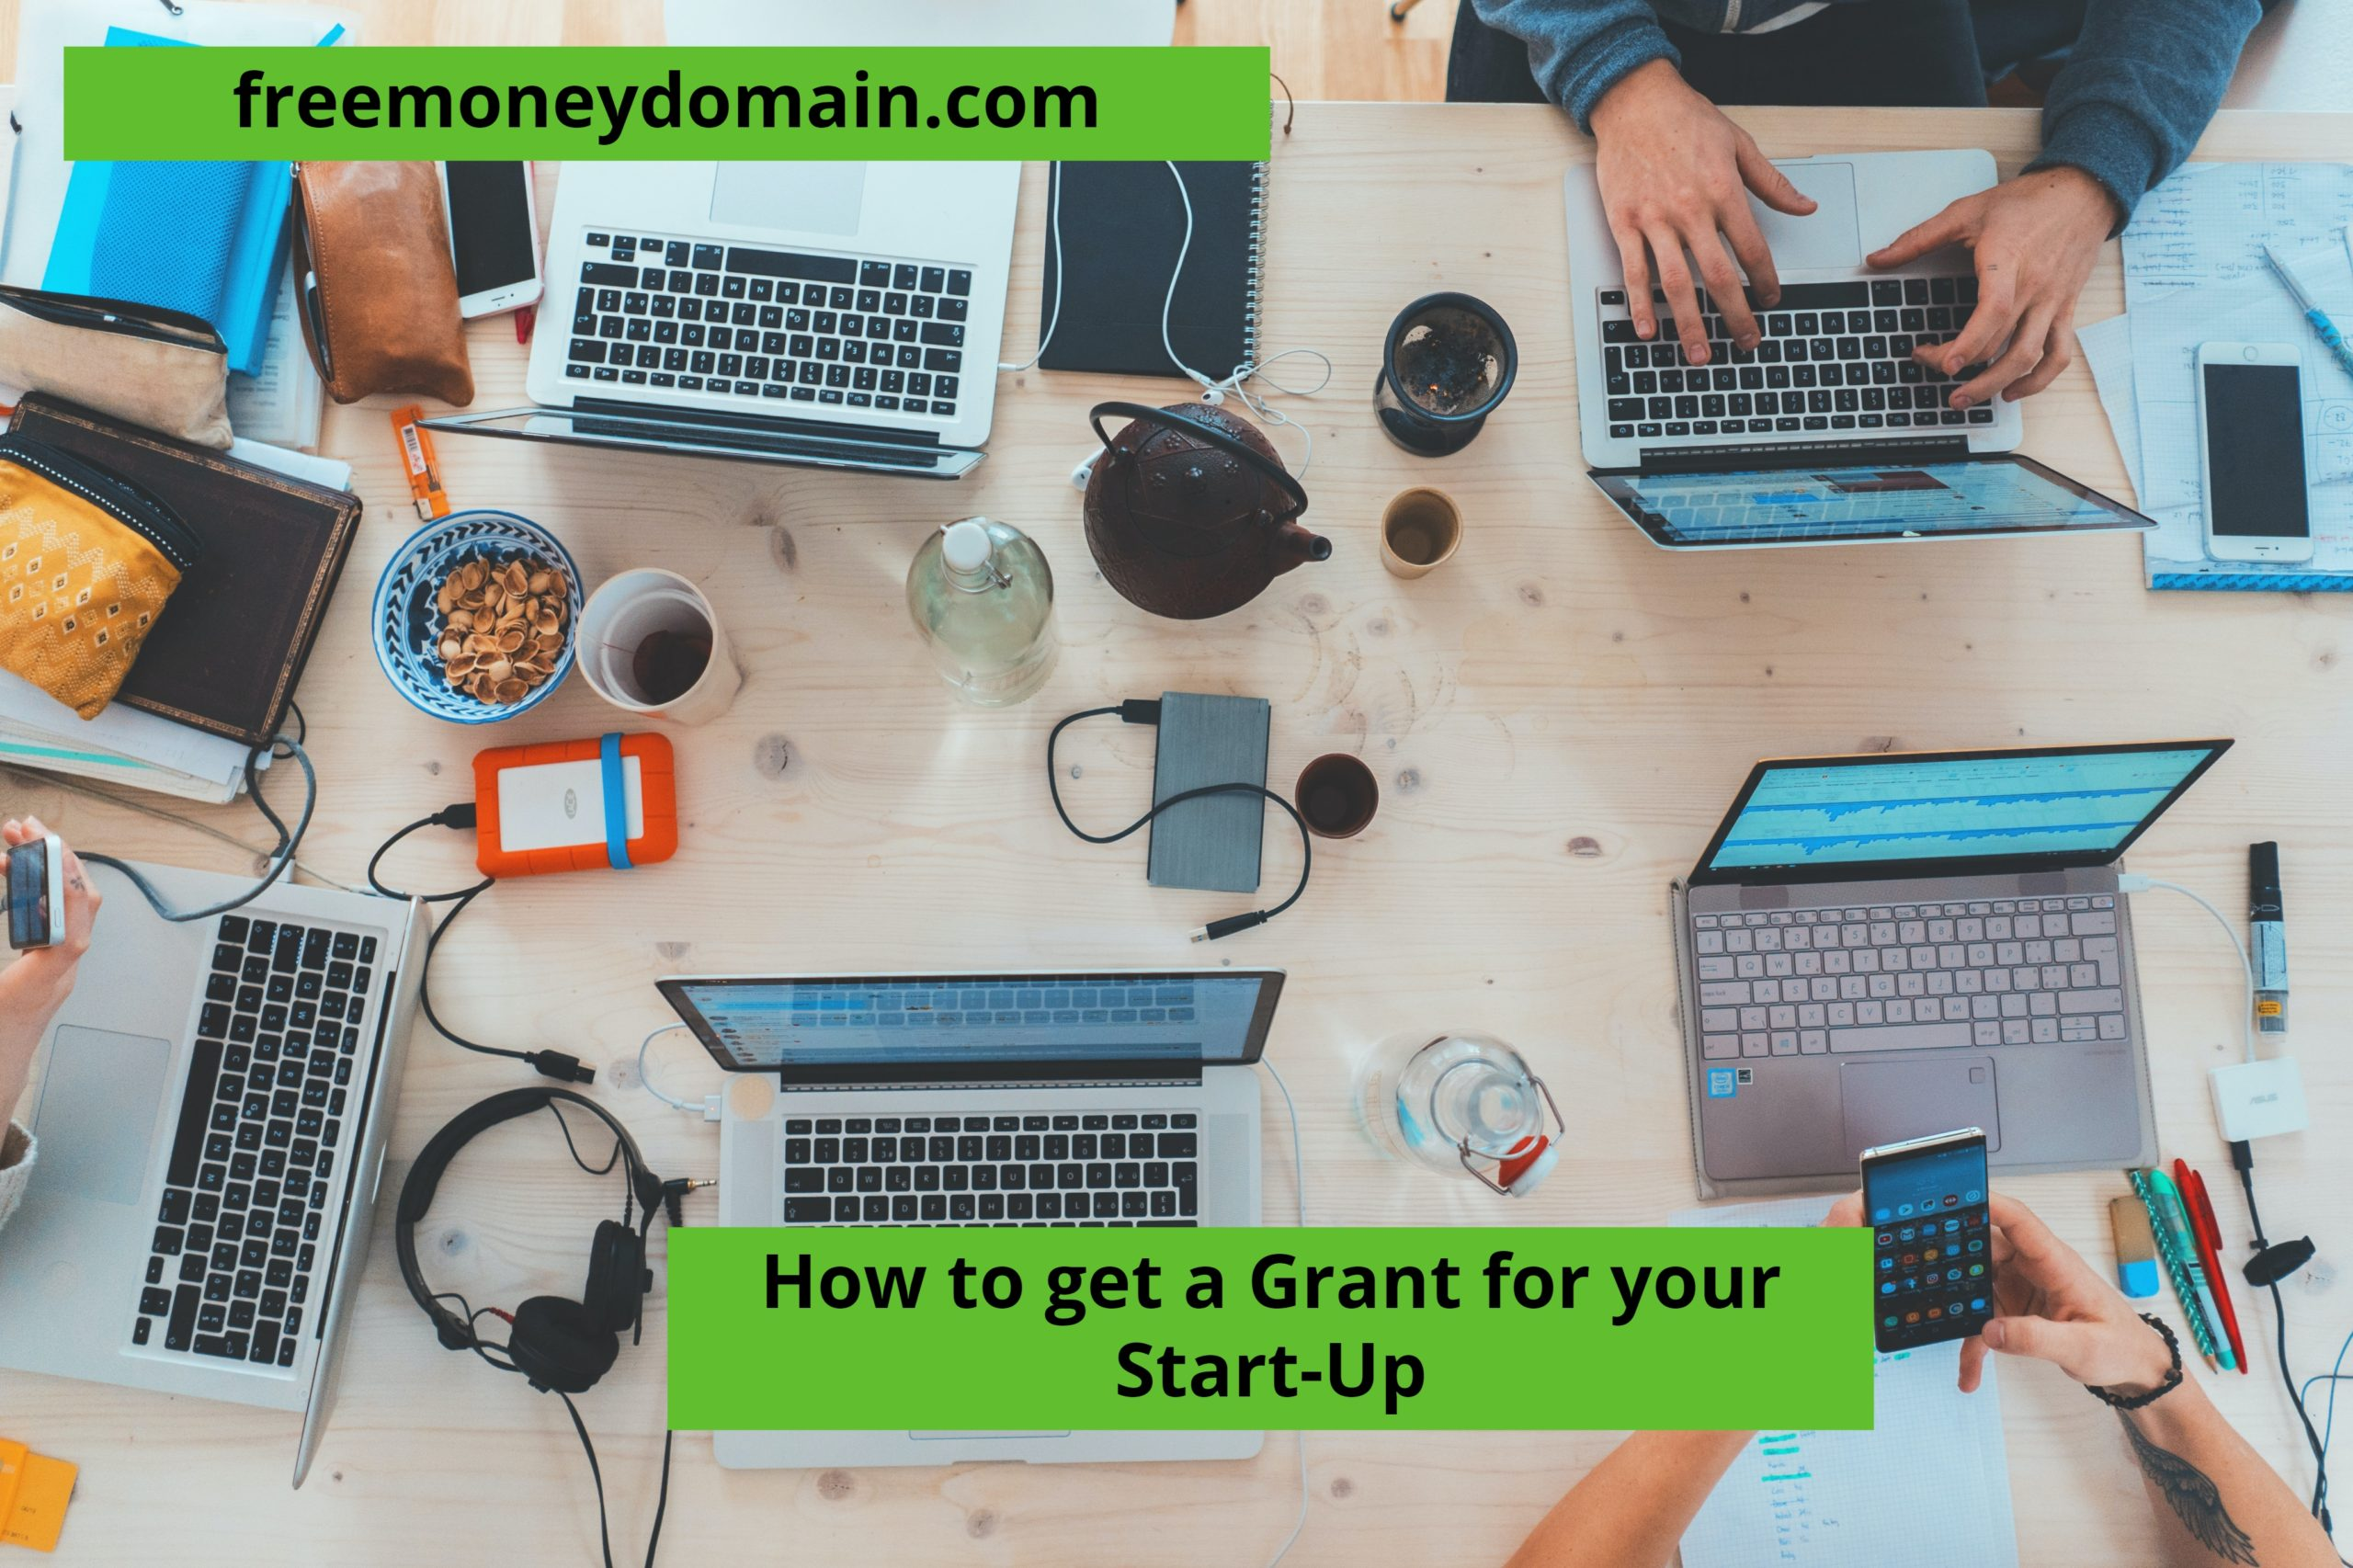 How to Get a Grant for your Start-Up in 2021